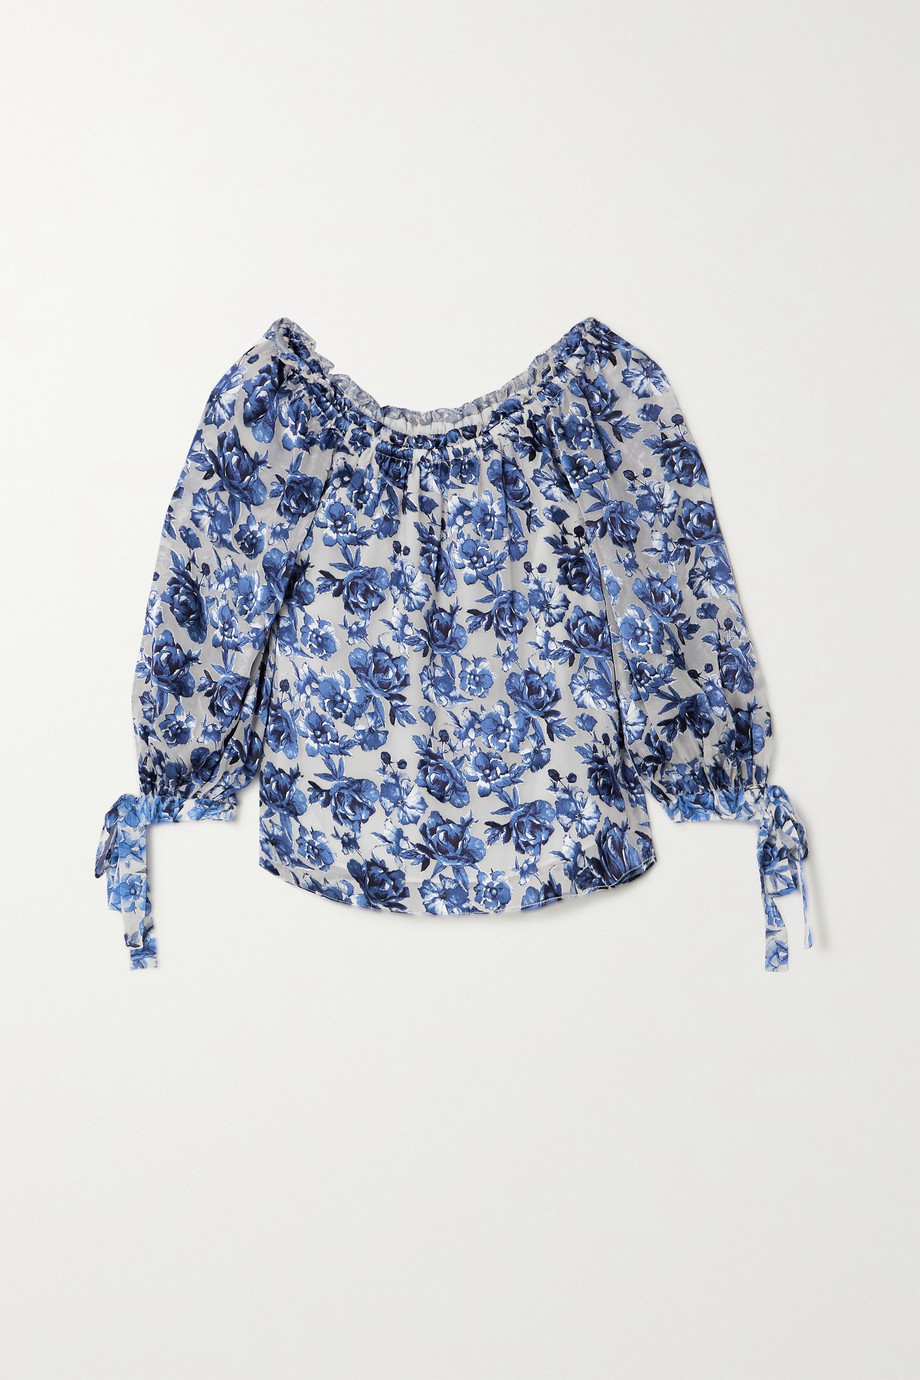 Alice + Olivia Alta off-the-shoulder floral-print chiffon blouse